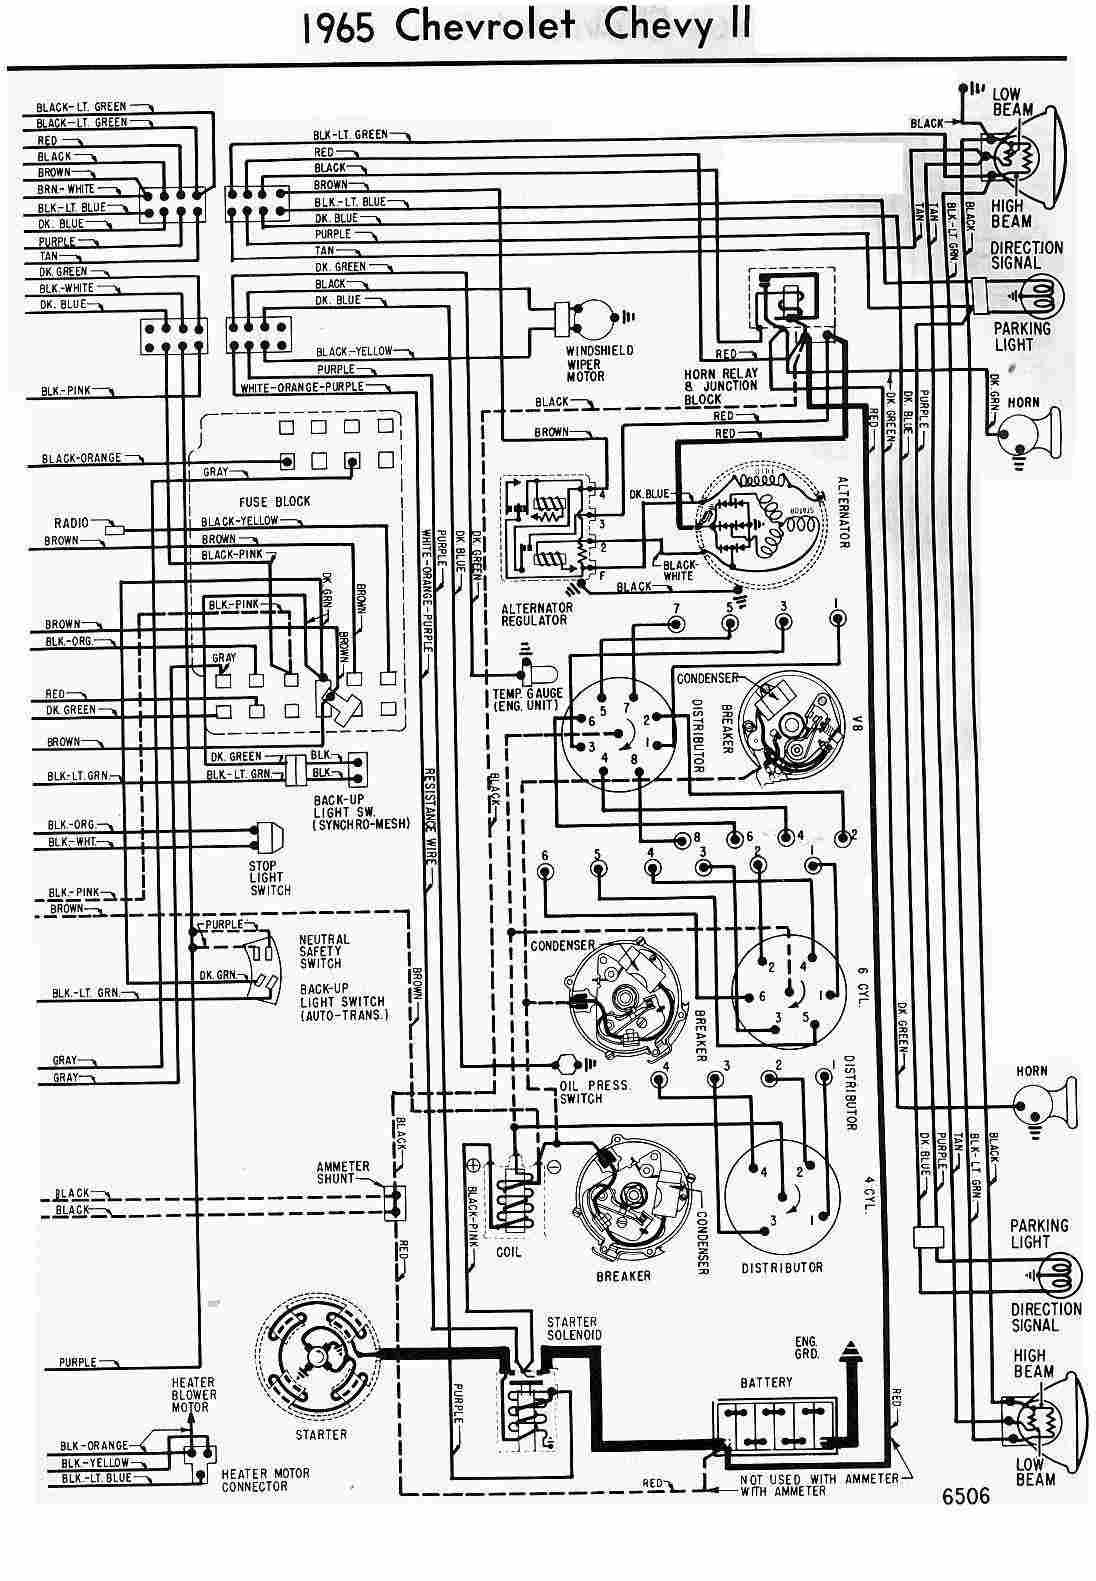 1966 chevy nova wiper wiring diagram house wiring diagram symbols \u2022 1971 chevy pickup wiring diagram 1966 nova wiper wiring diagram schematic trusted wiring diagram u2022 rh soulmatestyle co 1966 chevy c